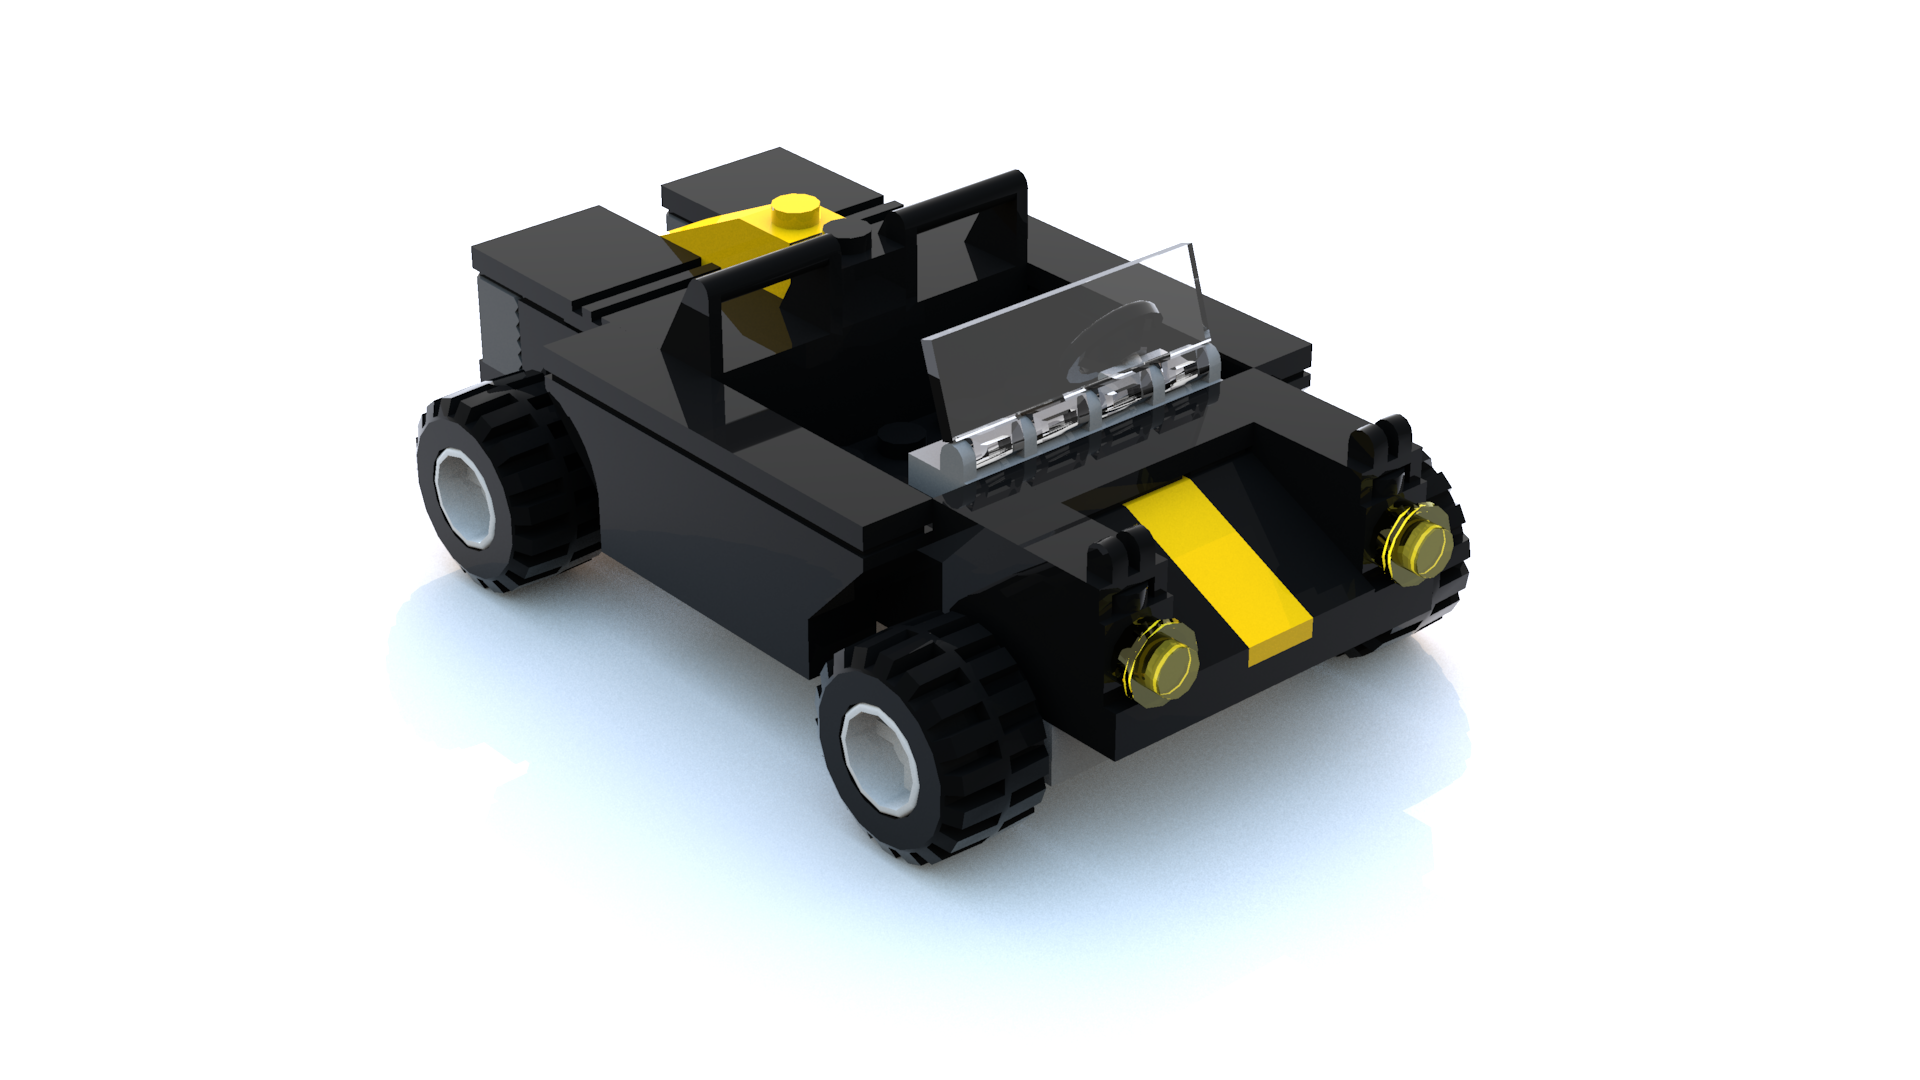 Lego Racers 2 Sandy Bay Taxi Car LDD Model - Personal